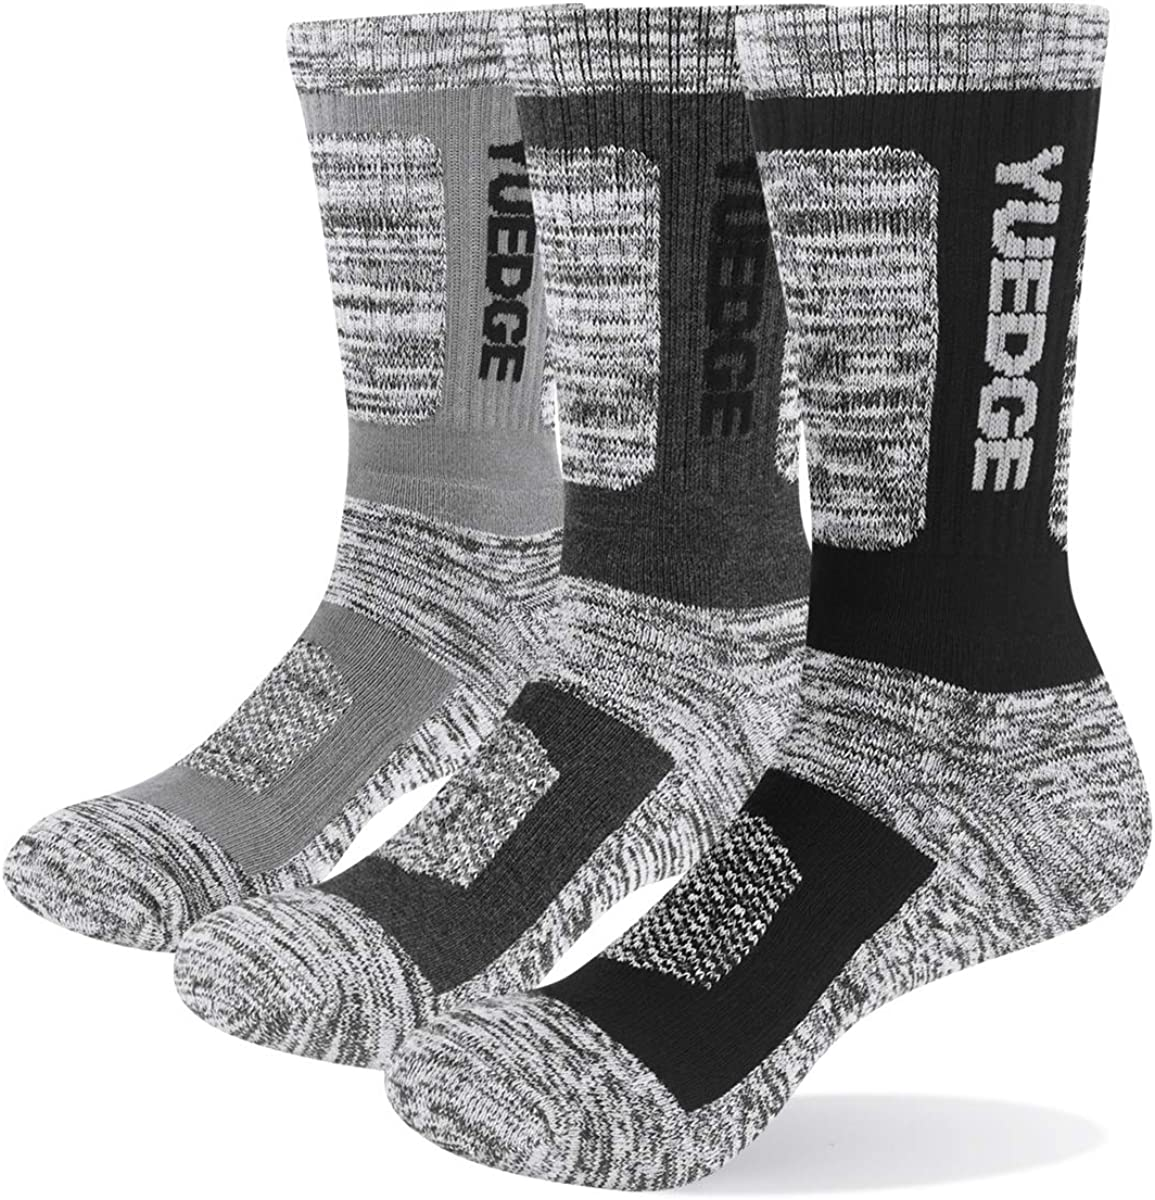 YUEDGE Men's Hiking Socks Cushion Crew Gym Fitness Thick Athletic Sports Socks For Men 6-13(5 Pairs/Pack)